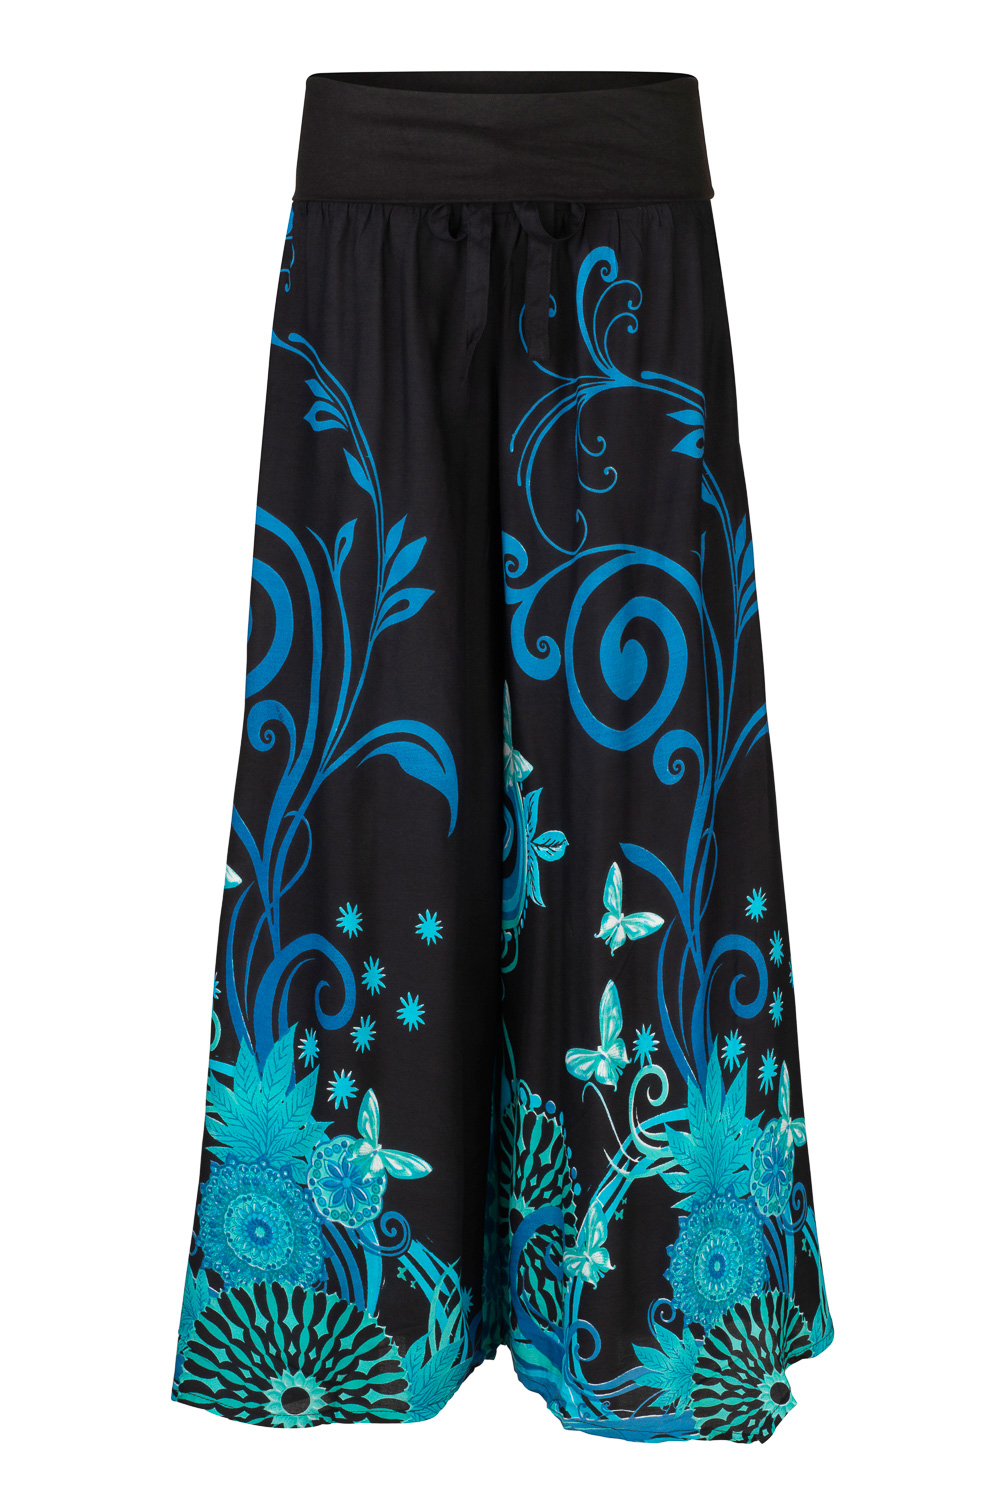 New Butterfly Palazzo Trousers Flare Pants Festival up to Plus Size